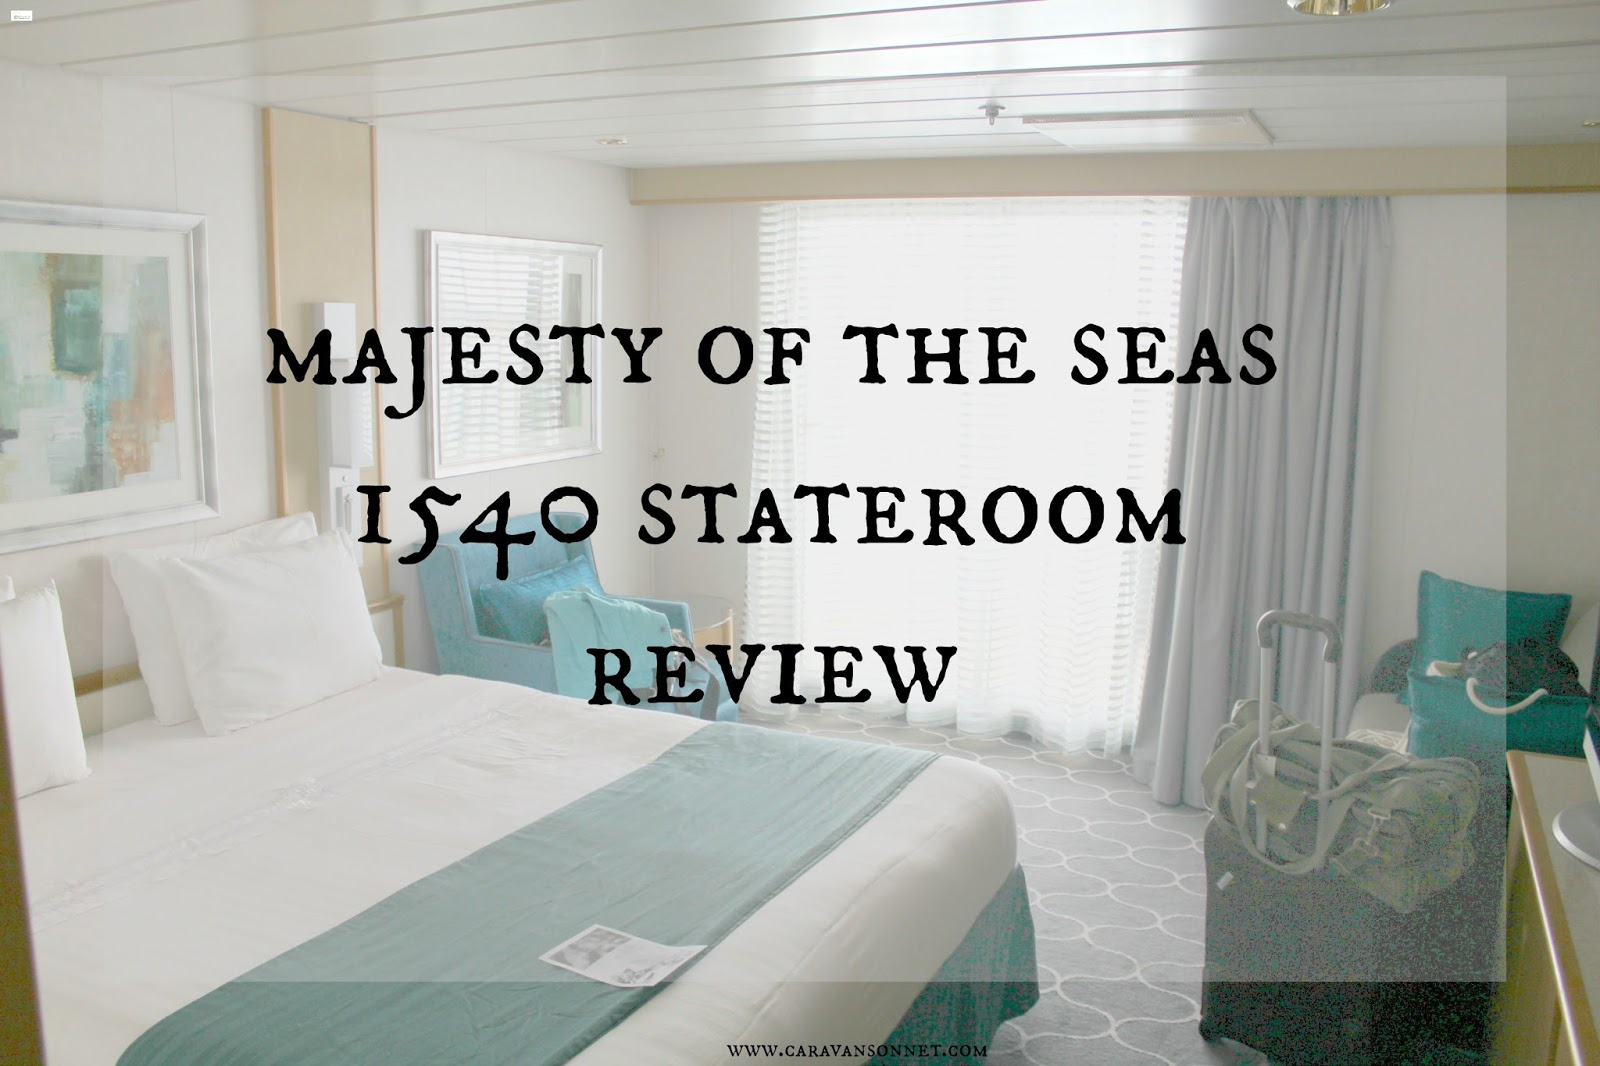 Majesty Of The Seas 1540 Stateroom Review Caravan Sonnet